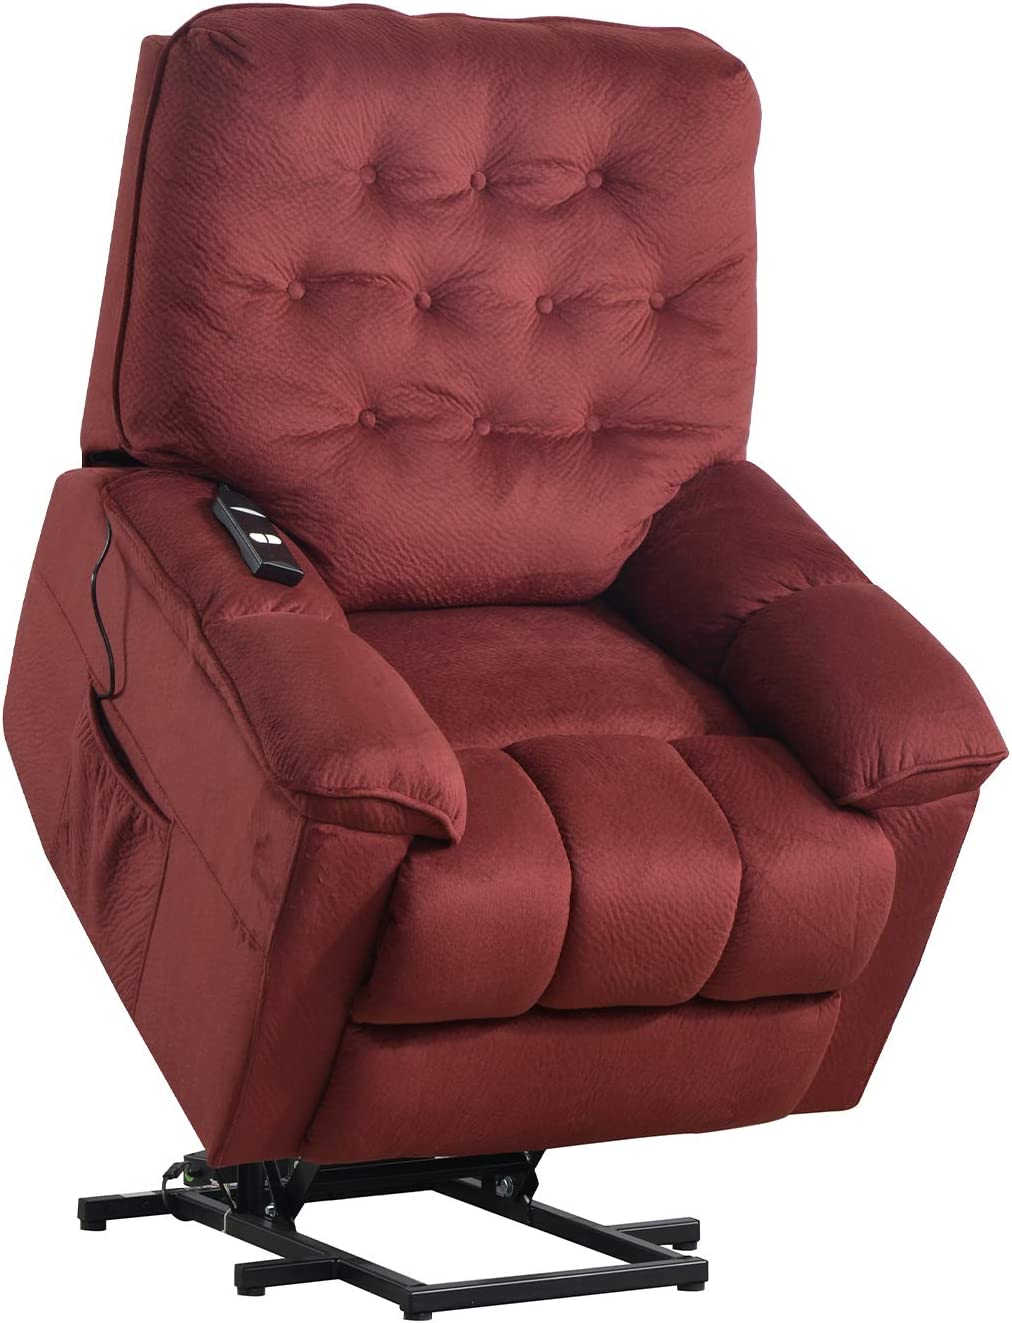 Merax Power Lift Recliner Chair Lazy Sofa for Elderly, Heavy-Duty Fuction with Remote Control, Office or Living Room, Red